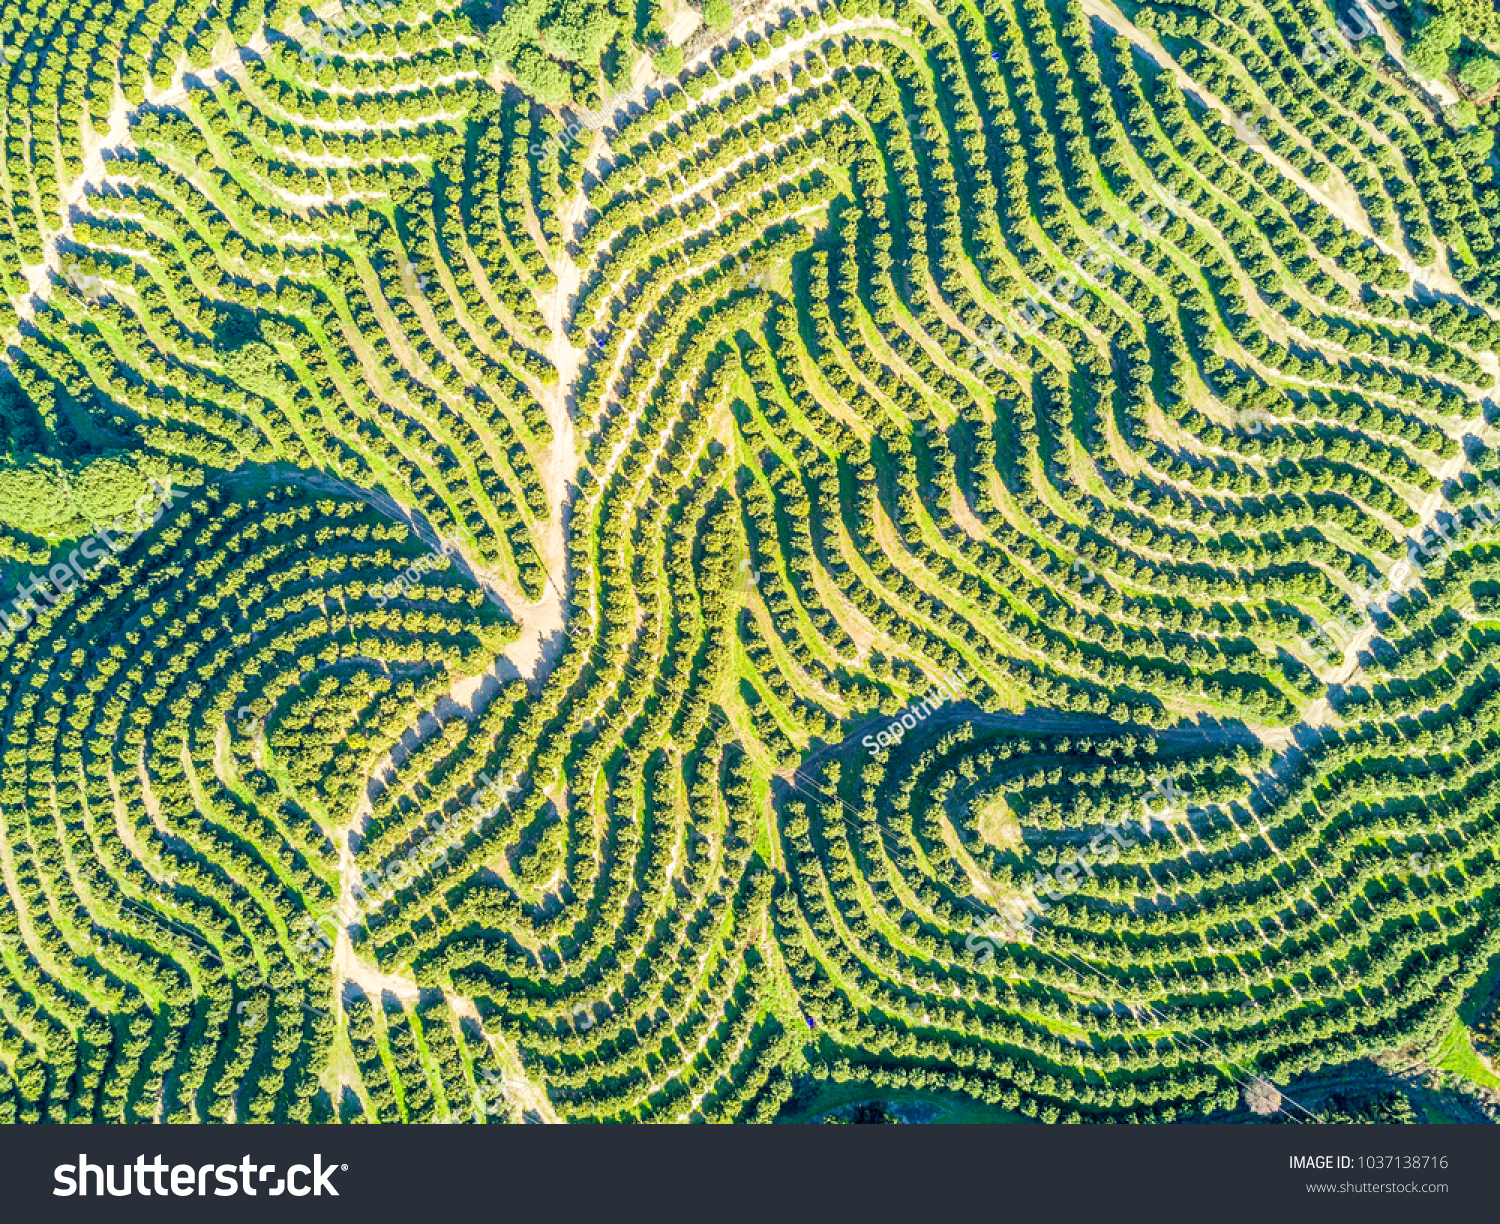 Aerial view of orange tree groves on hills creating organic pattern #1037138716